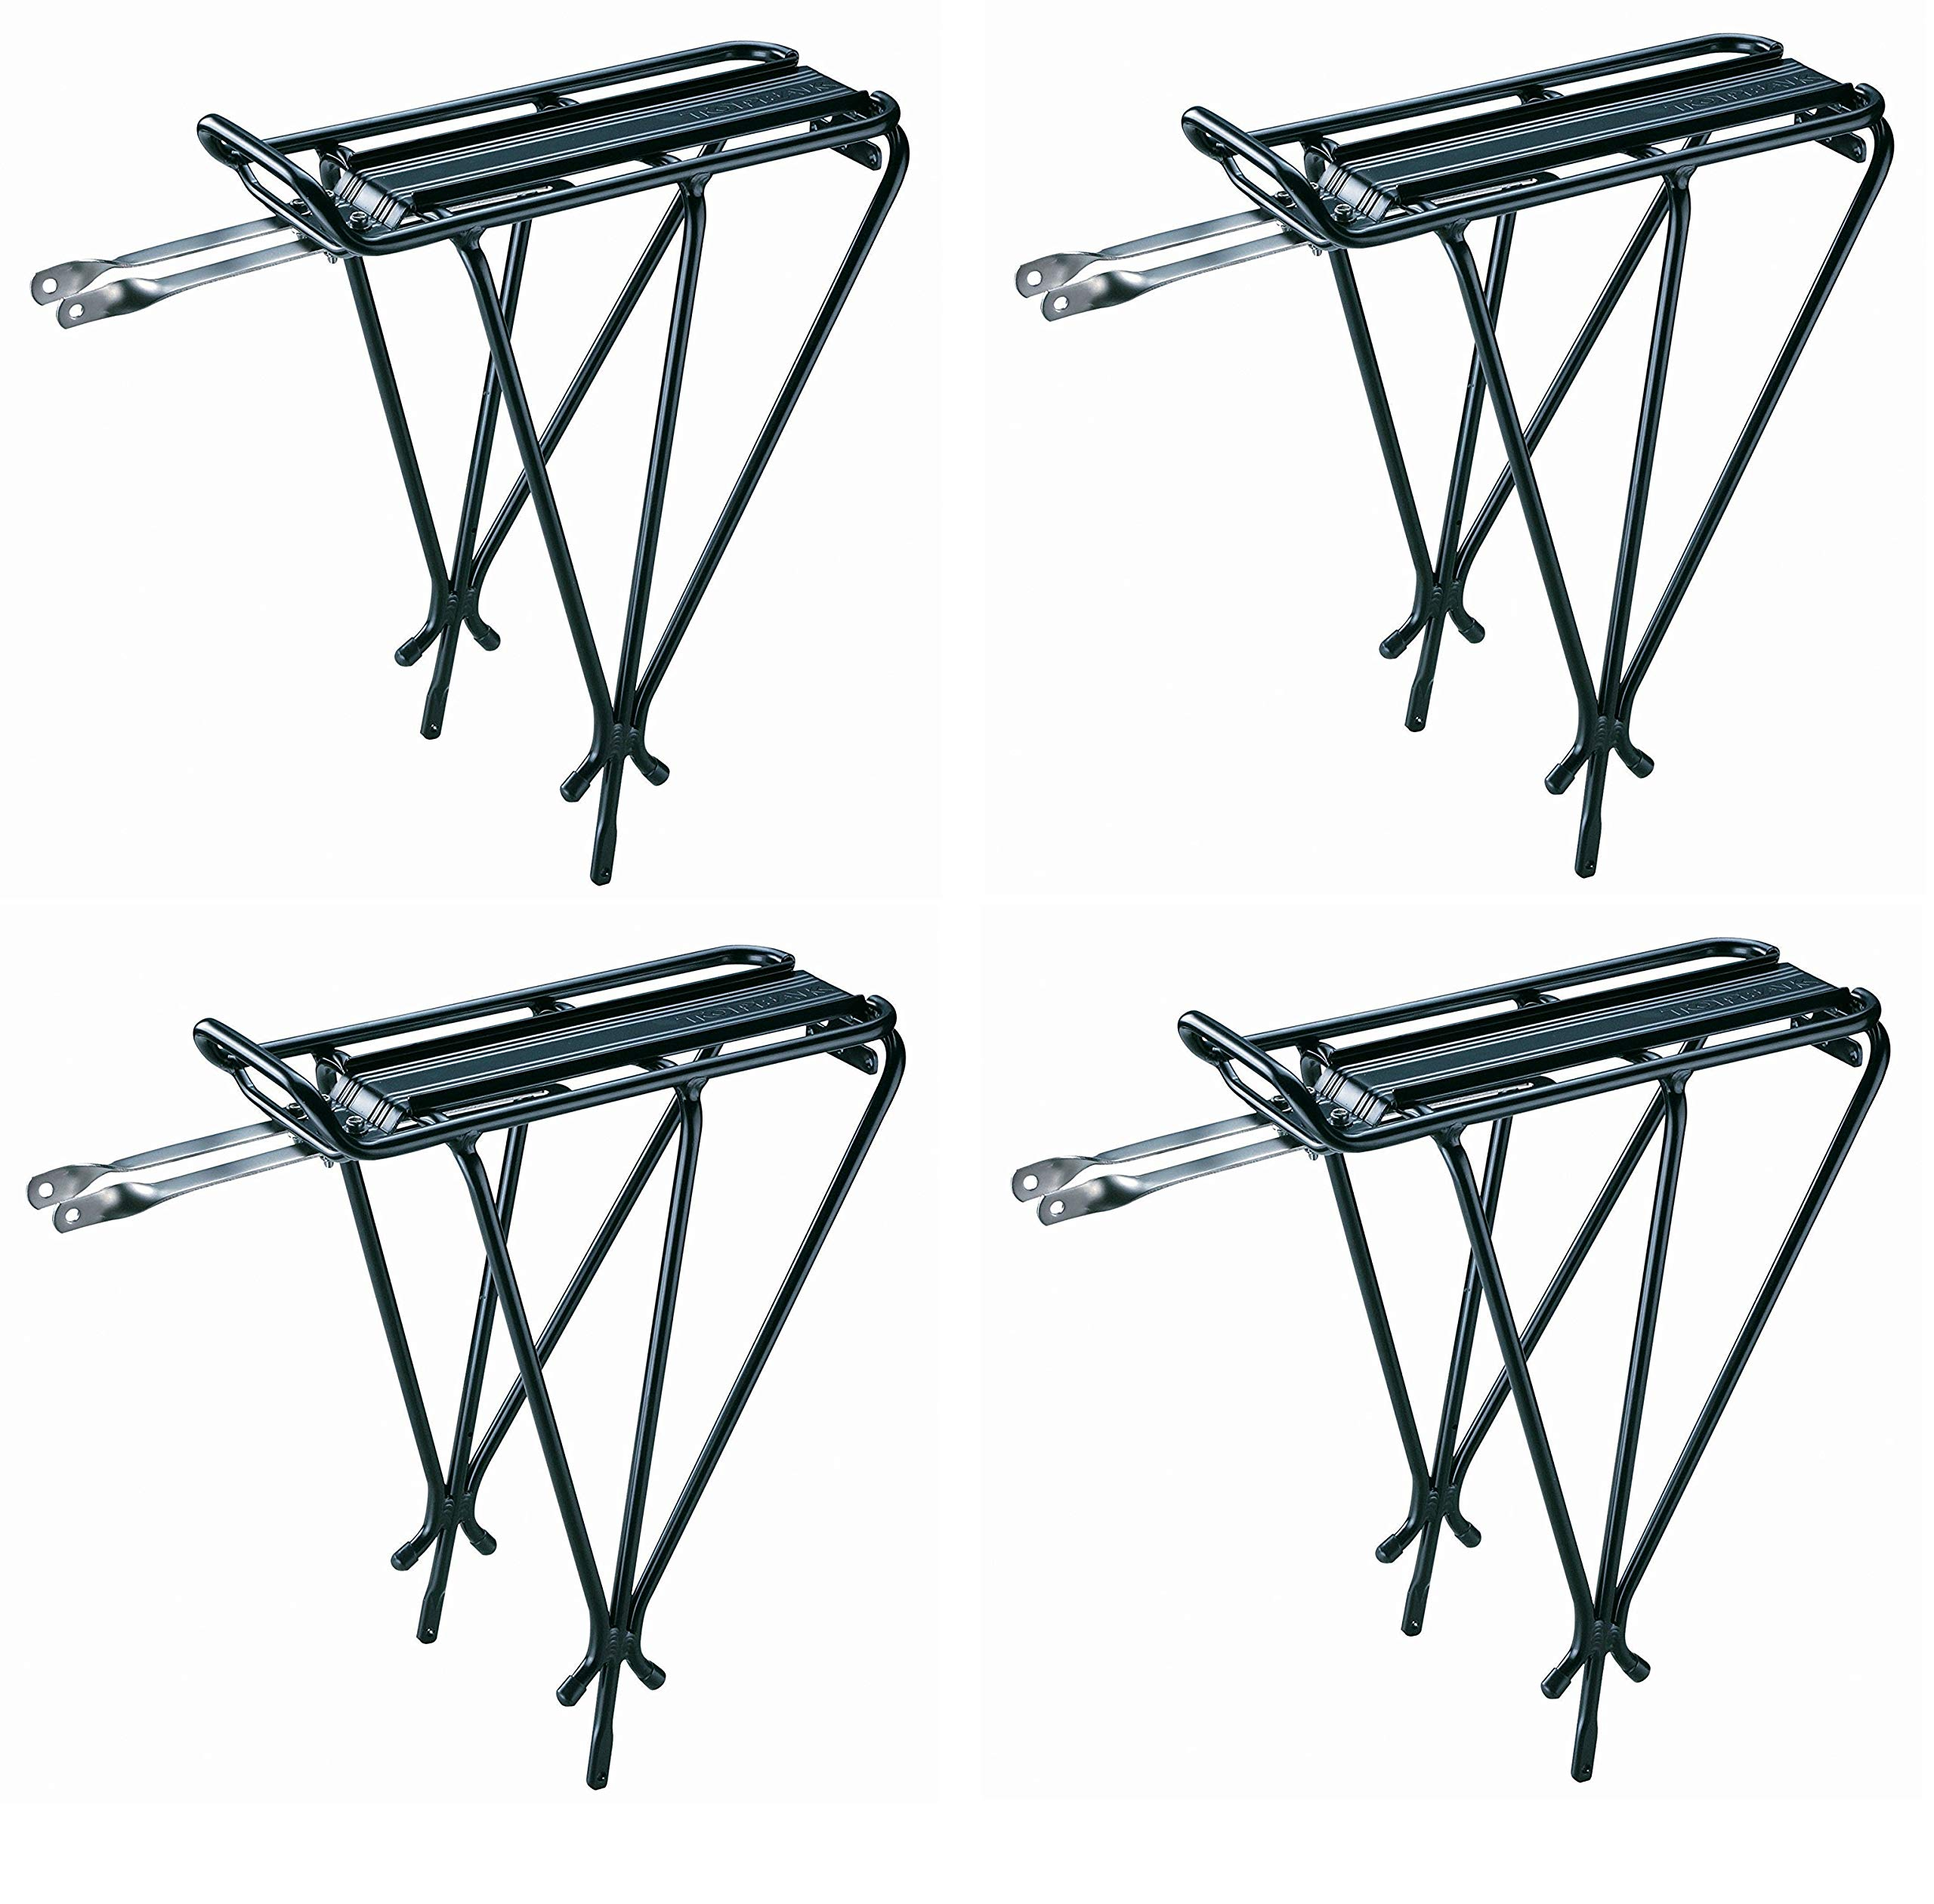 Topeak Explorer Rack Without Spring, Black (Pack of 4)